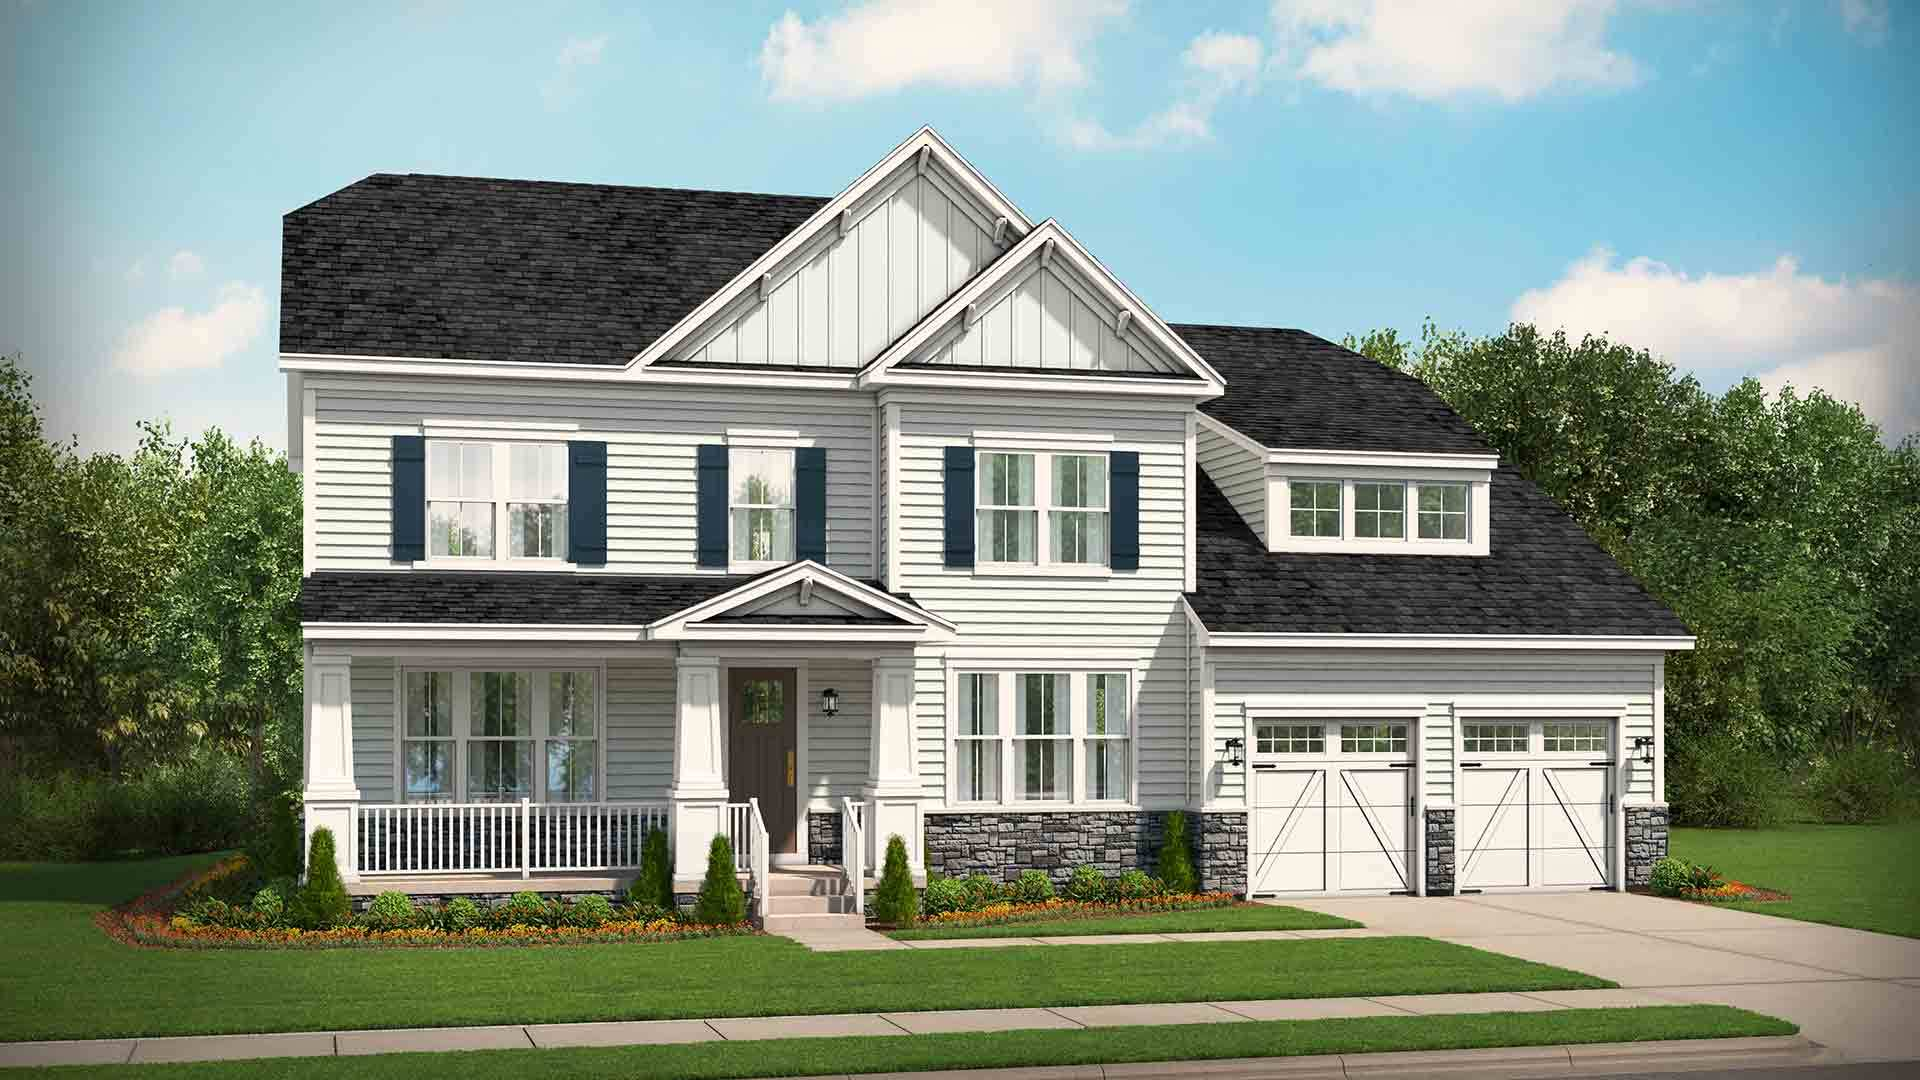 Colton plan charlottesville virginia 22903 colton plan for Virginia farmhouse plans